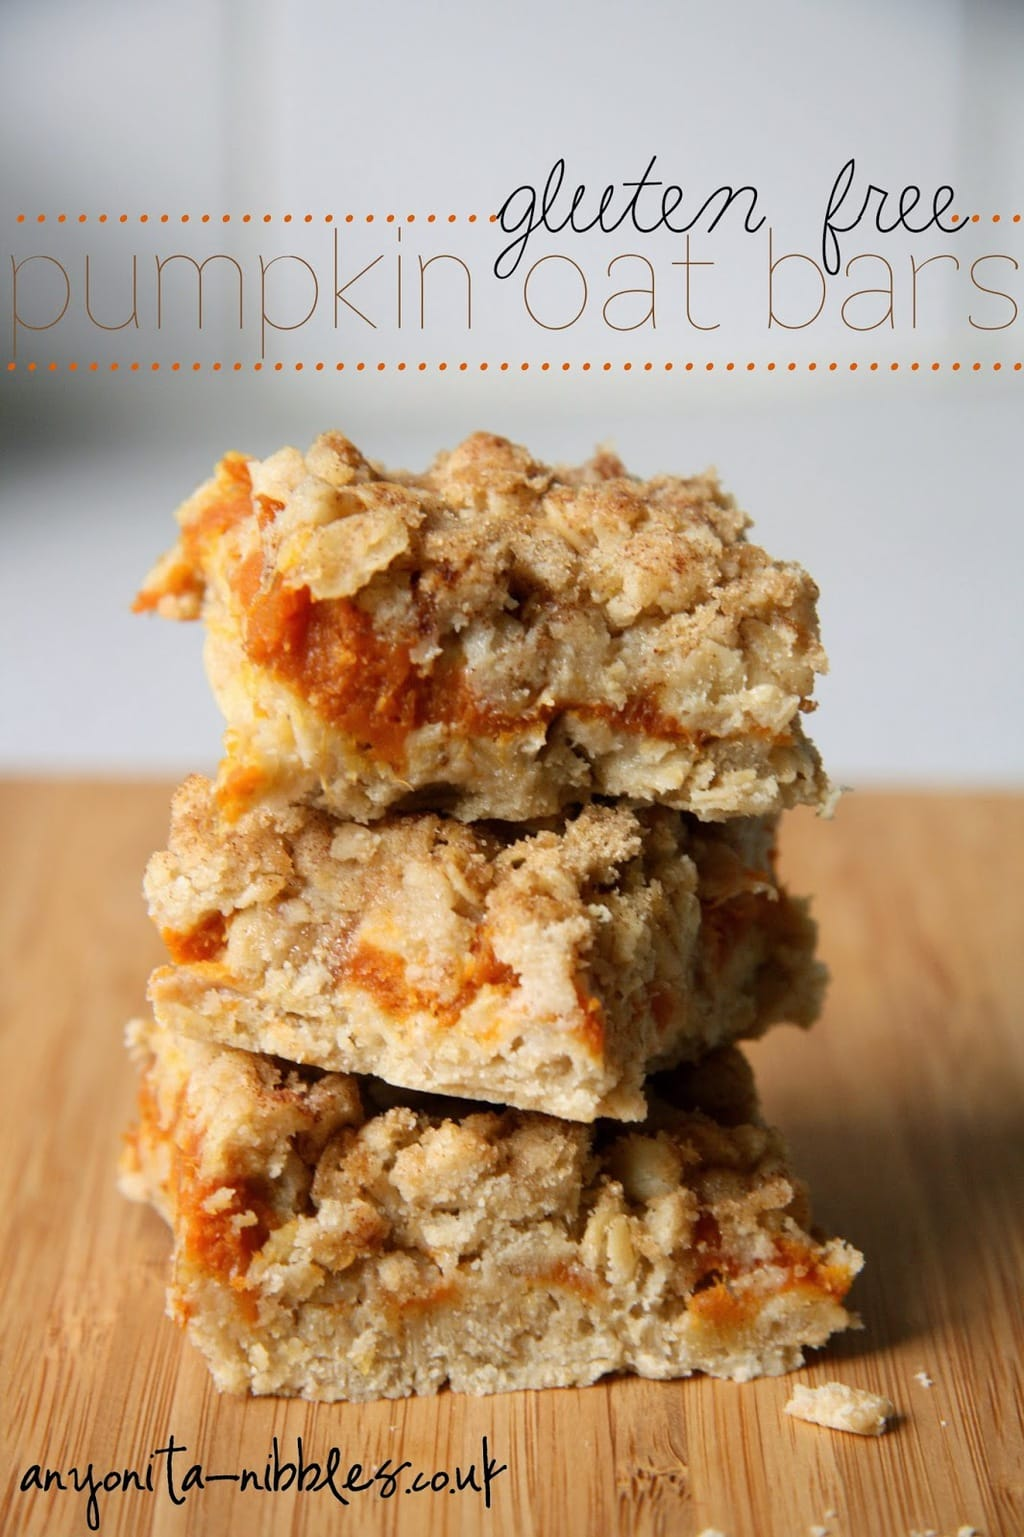 stack-of-pumpkin-oat-bars